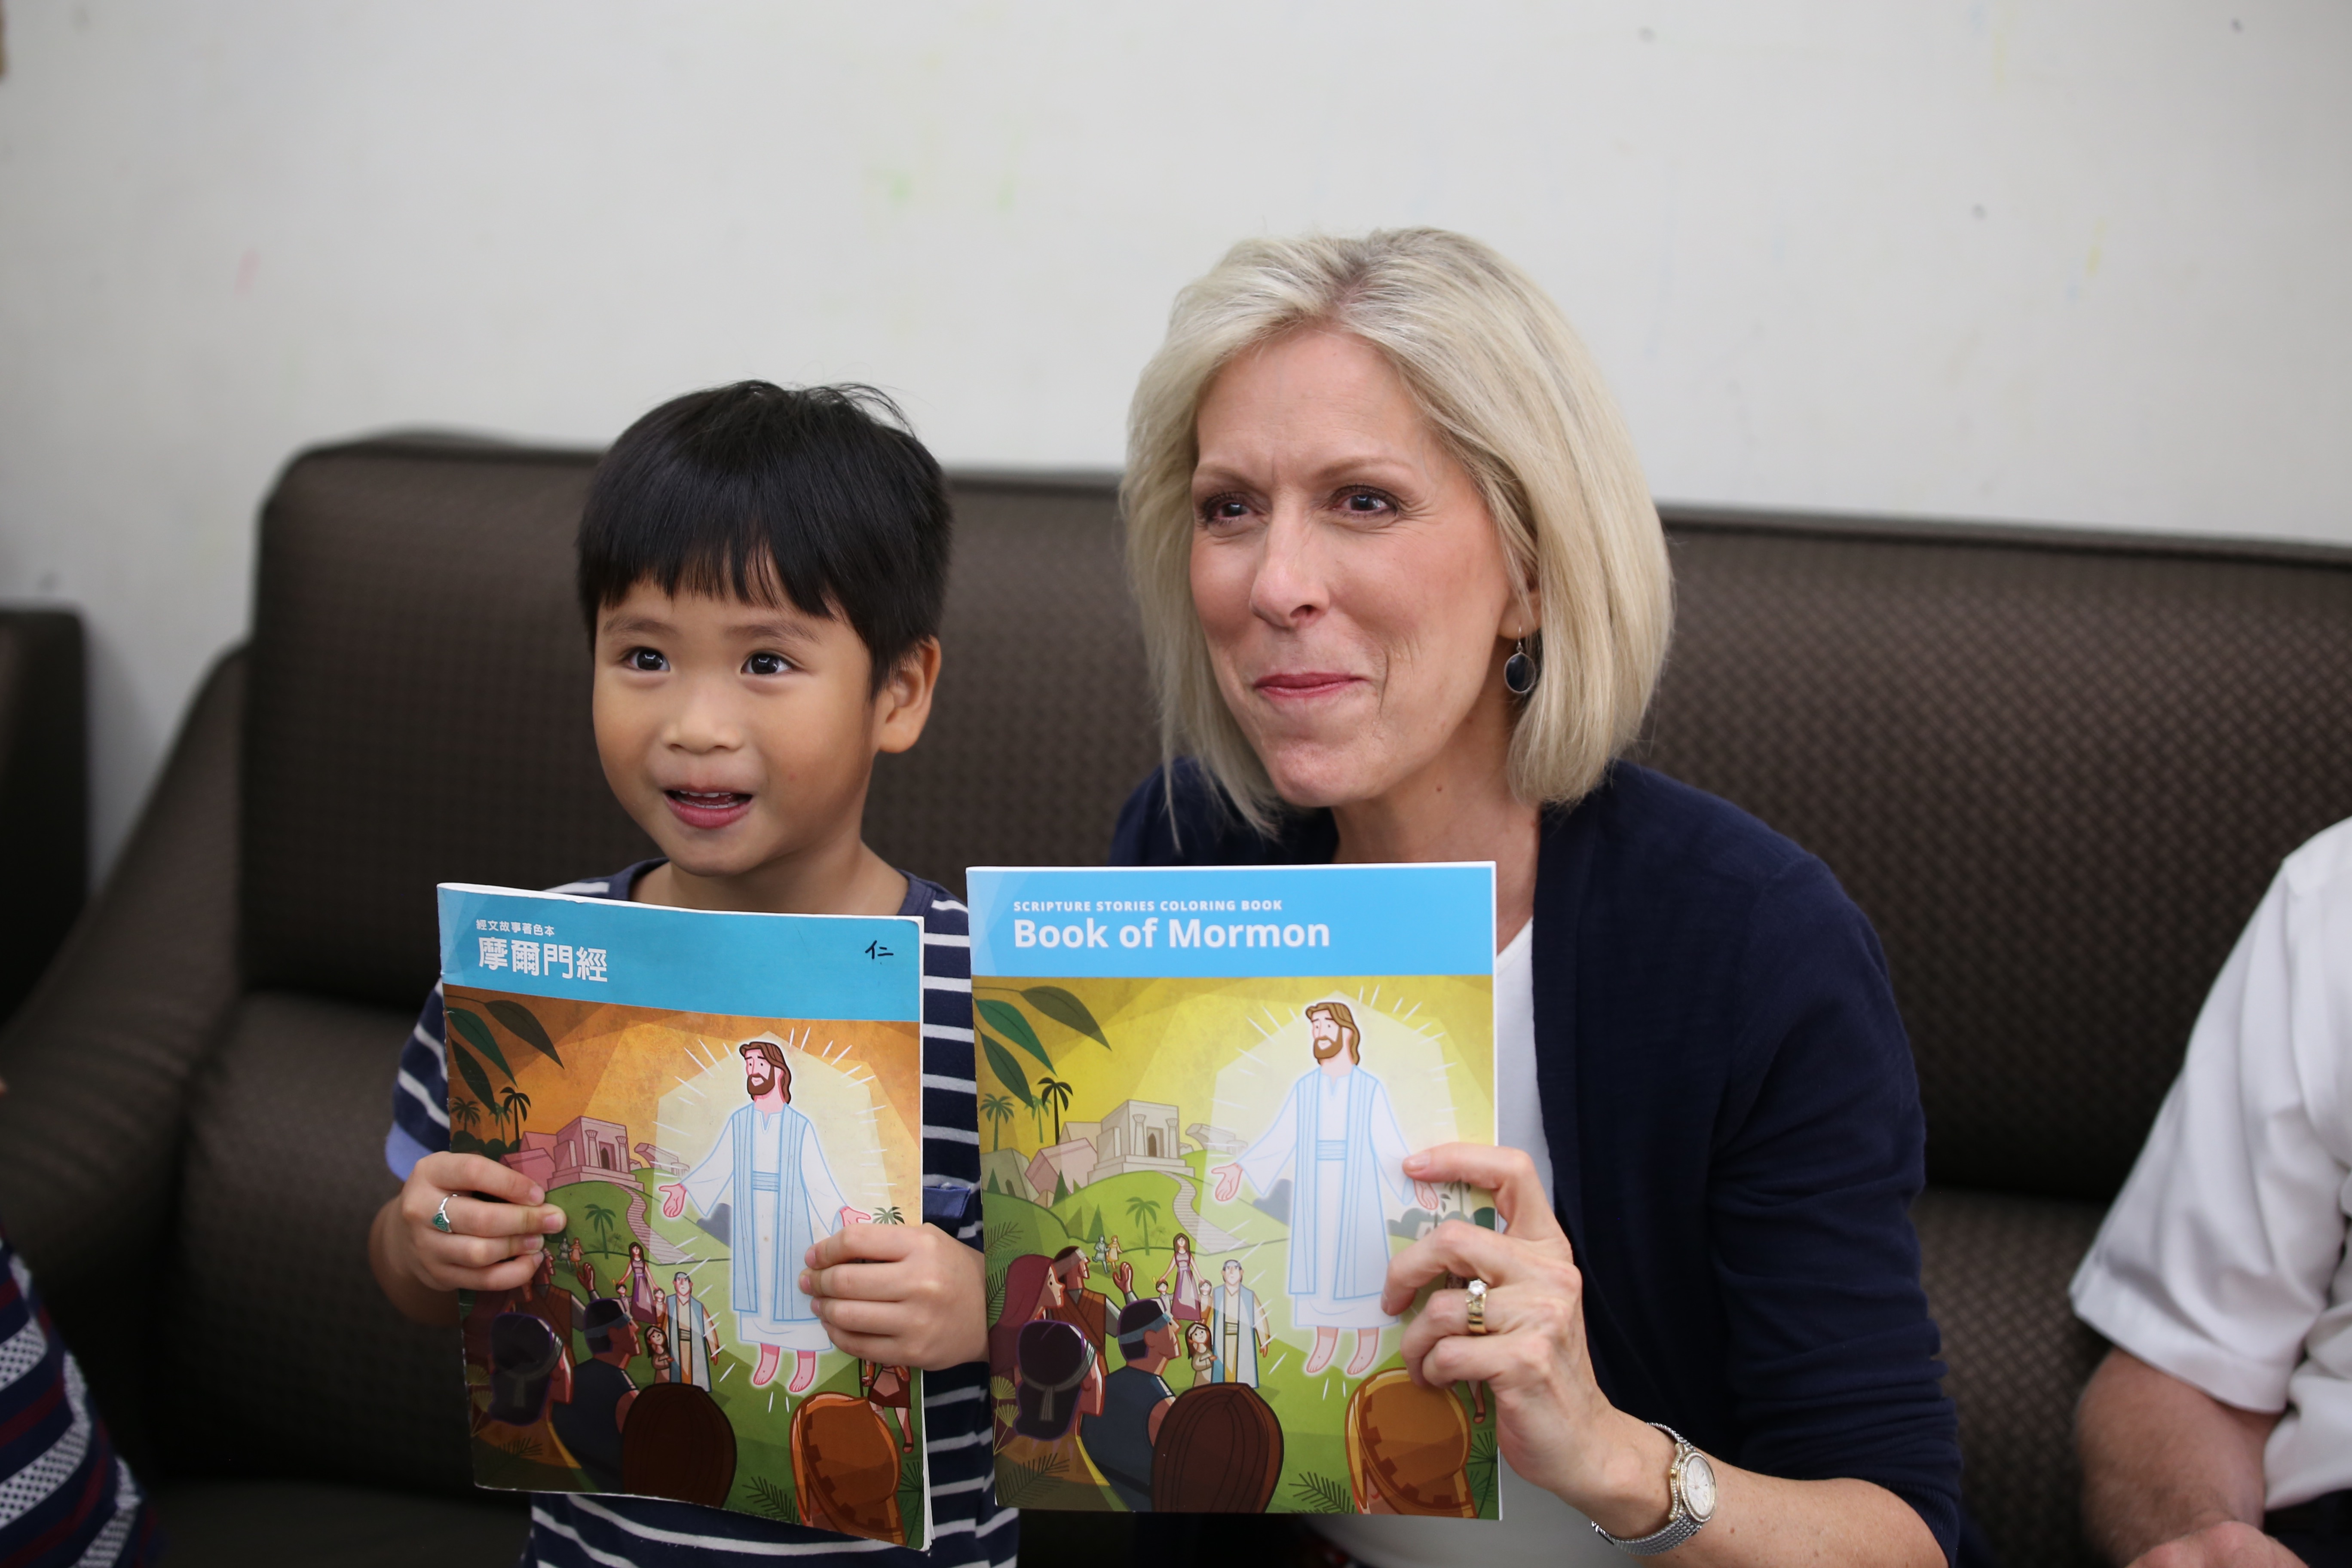 Sister Joy D. Jones, Primary general president, and a young boy show off their matching Book of Mormon coloring books during a visit to a member family's home in Taitung, Taiwan, during a visit to the Asia Area from Aug. 17 to 14, 2019.